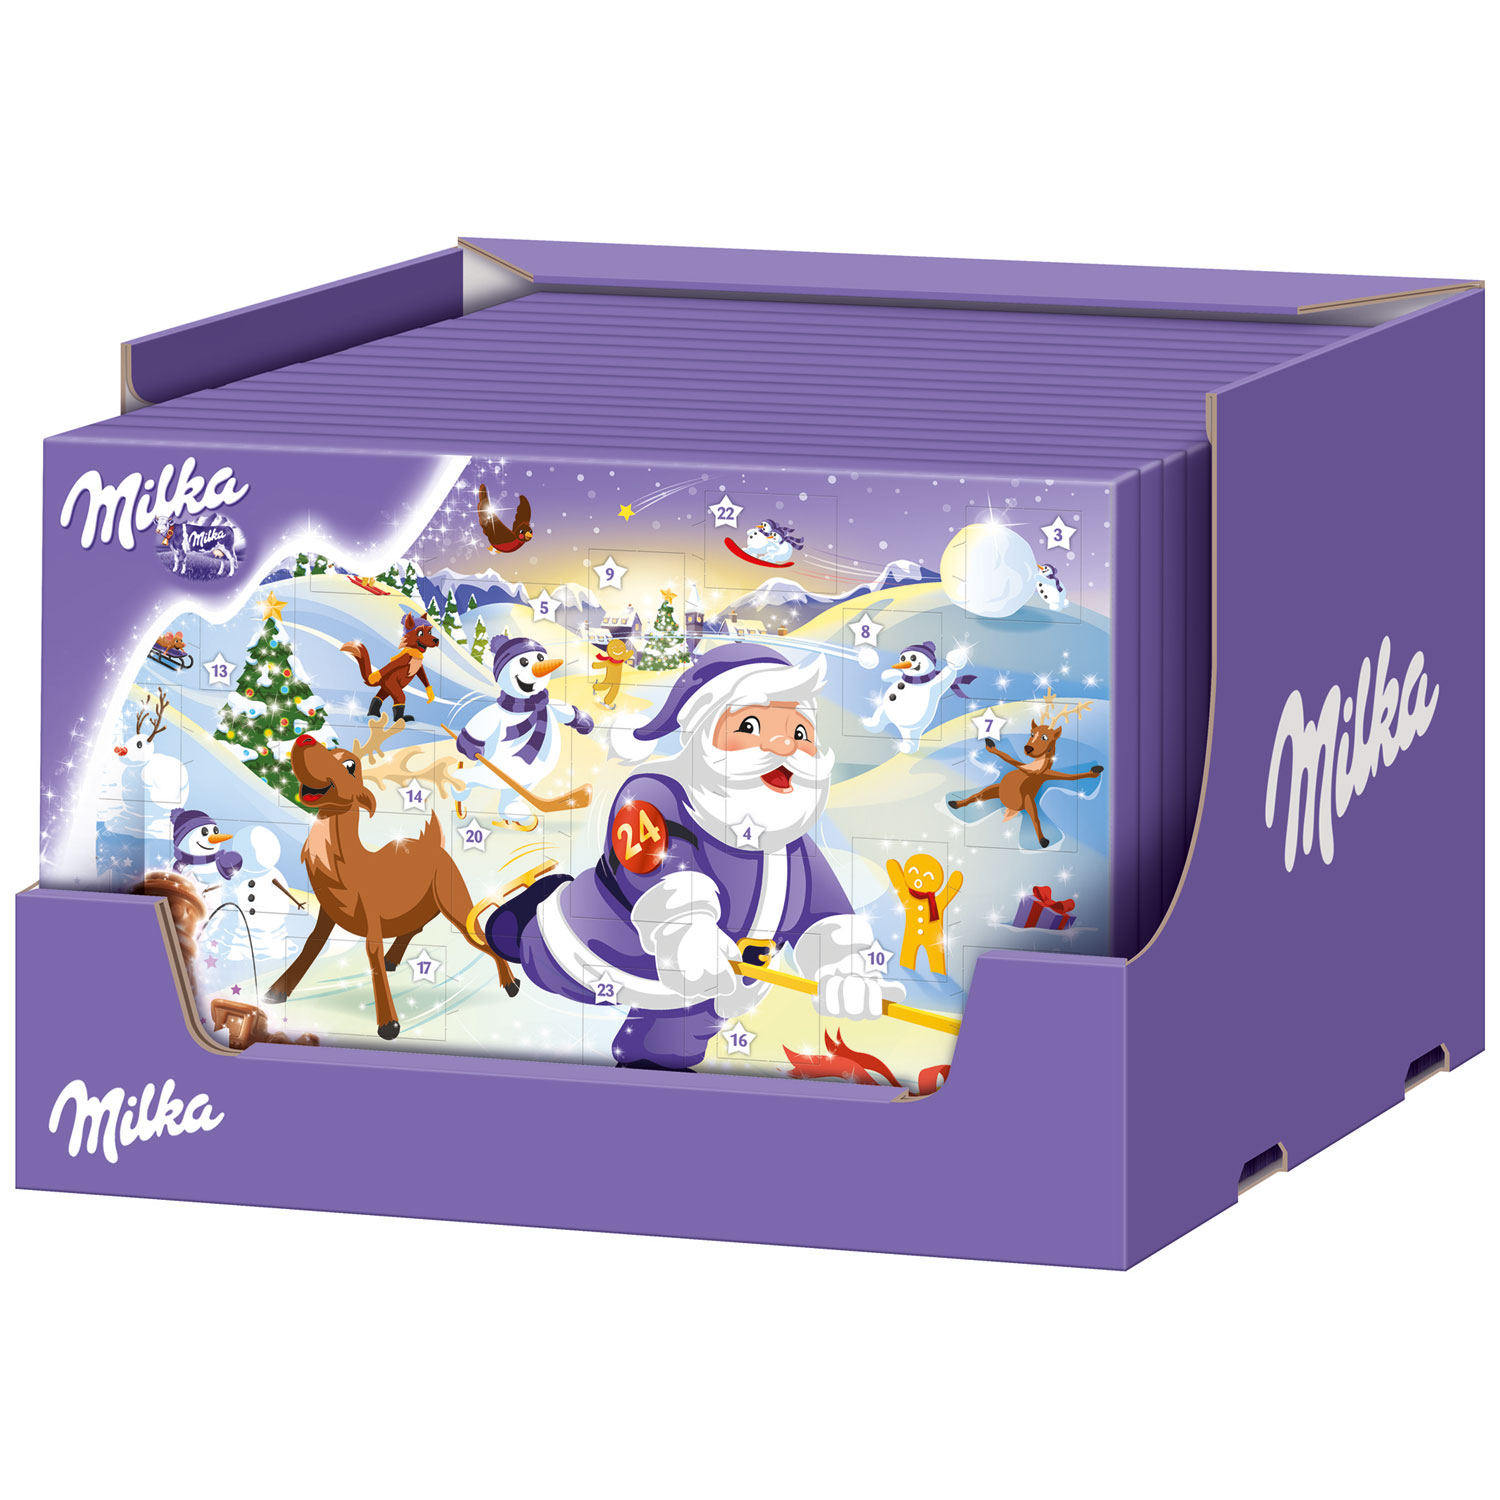 milka adventskalender online kaufen im world of sweets shop. Black Bedroom Furniture Sets. Home Design Ideas